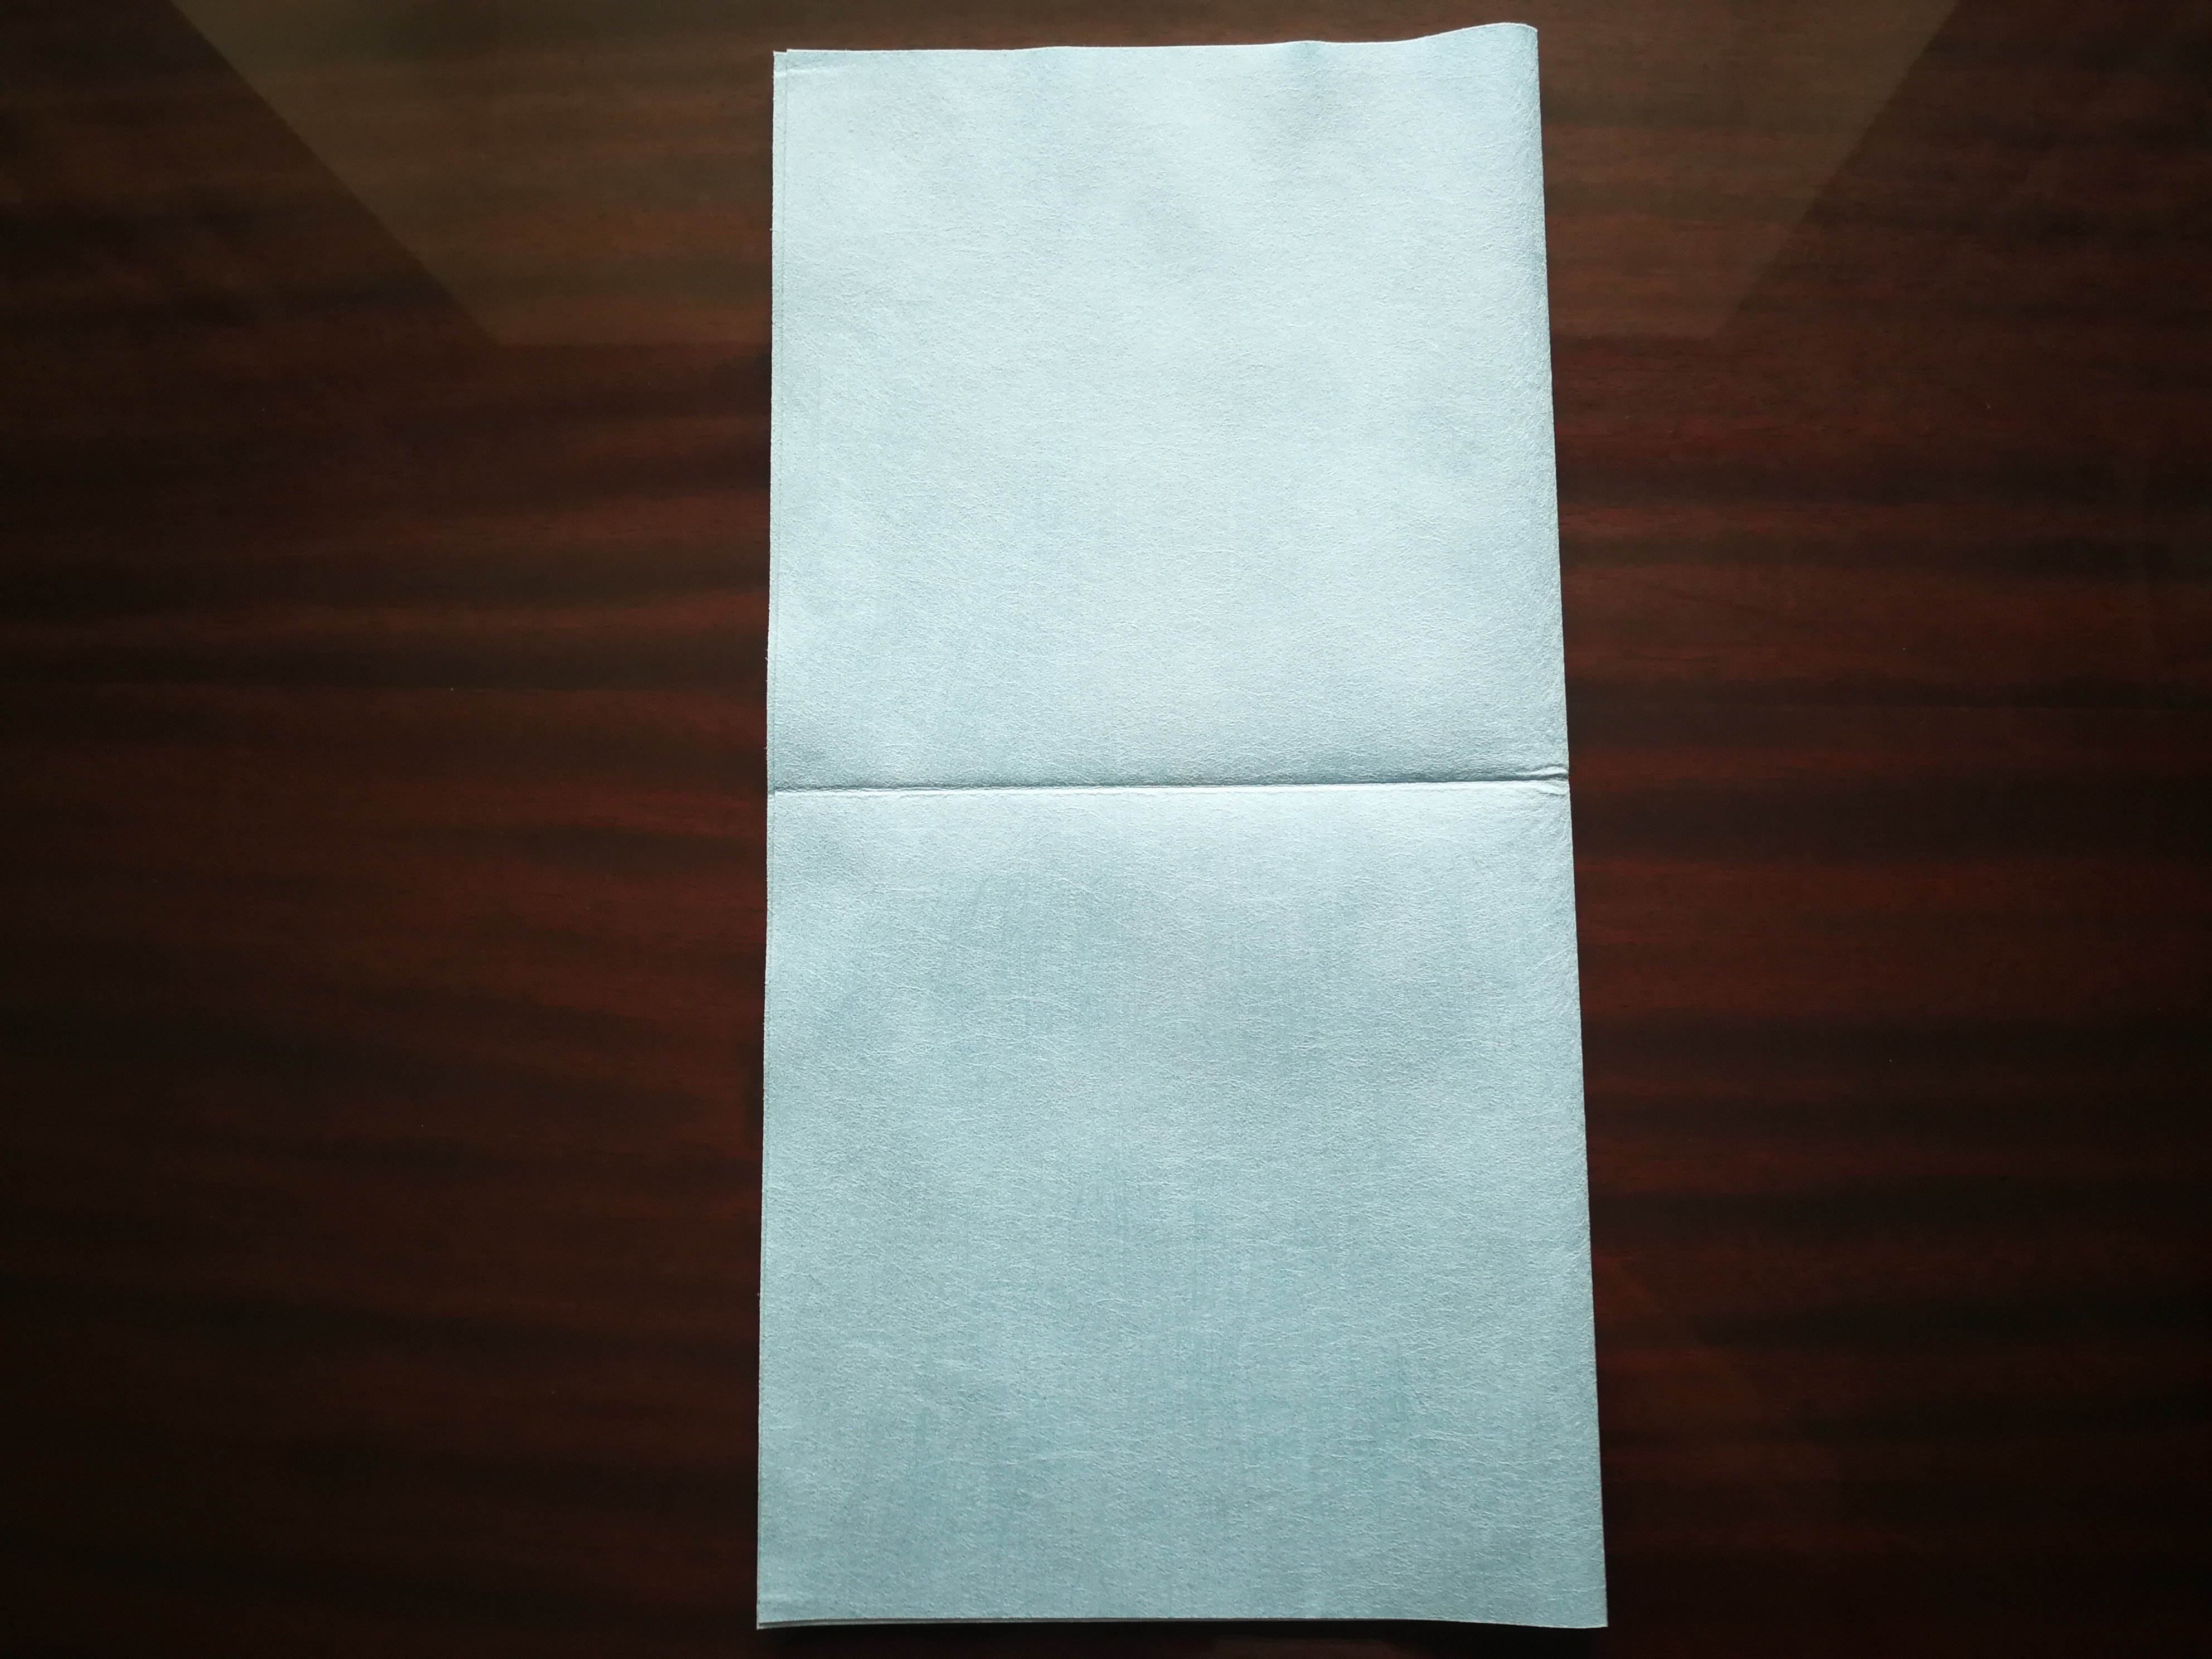 Picture of Cutting on the Cleaning Cloth